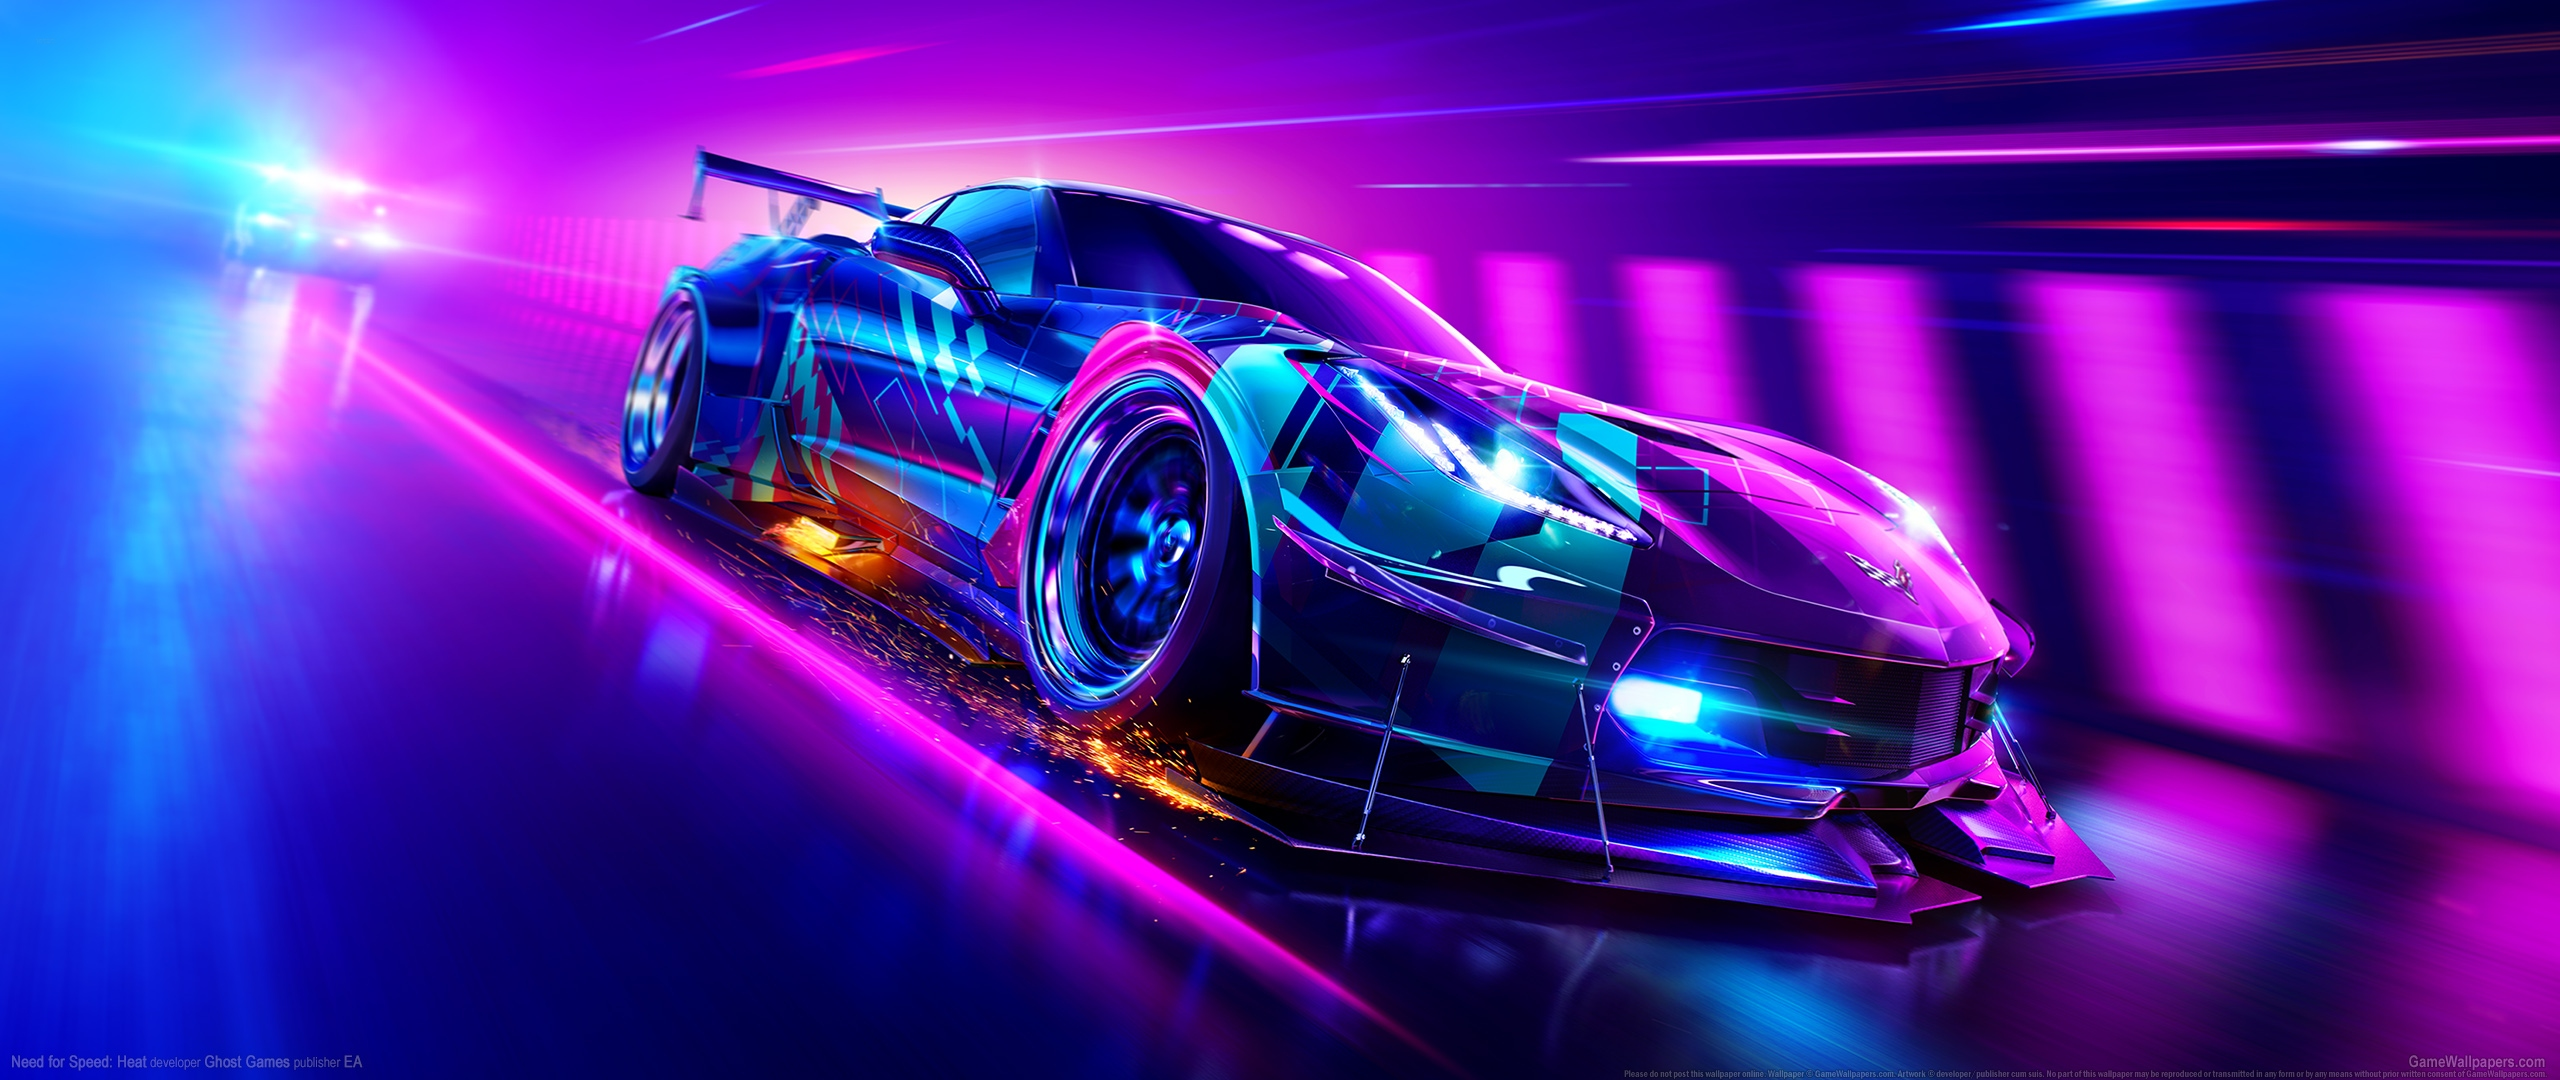 Need for Speed: Heat 2560x1080 wallpaper or background 03